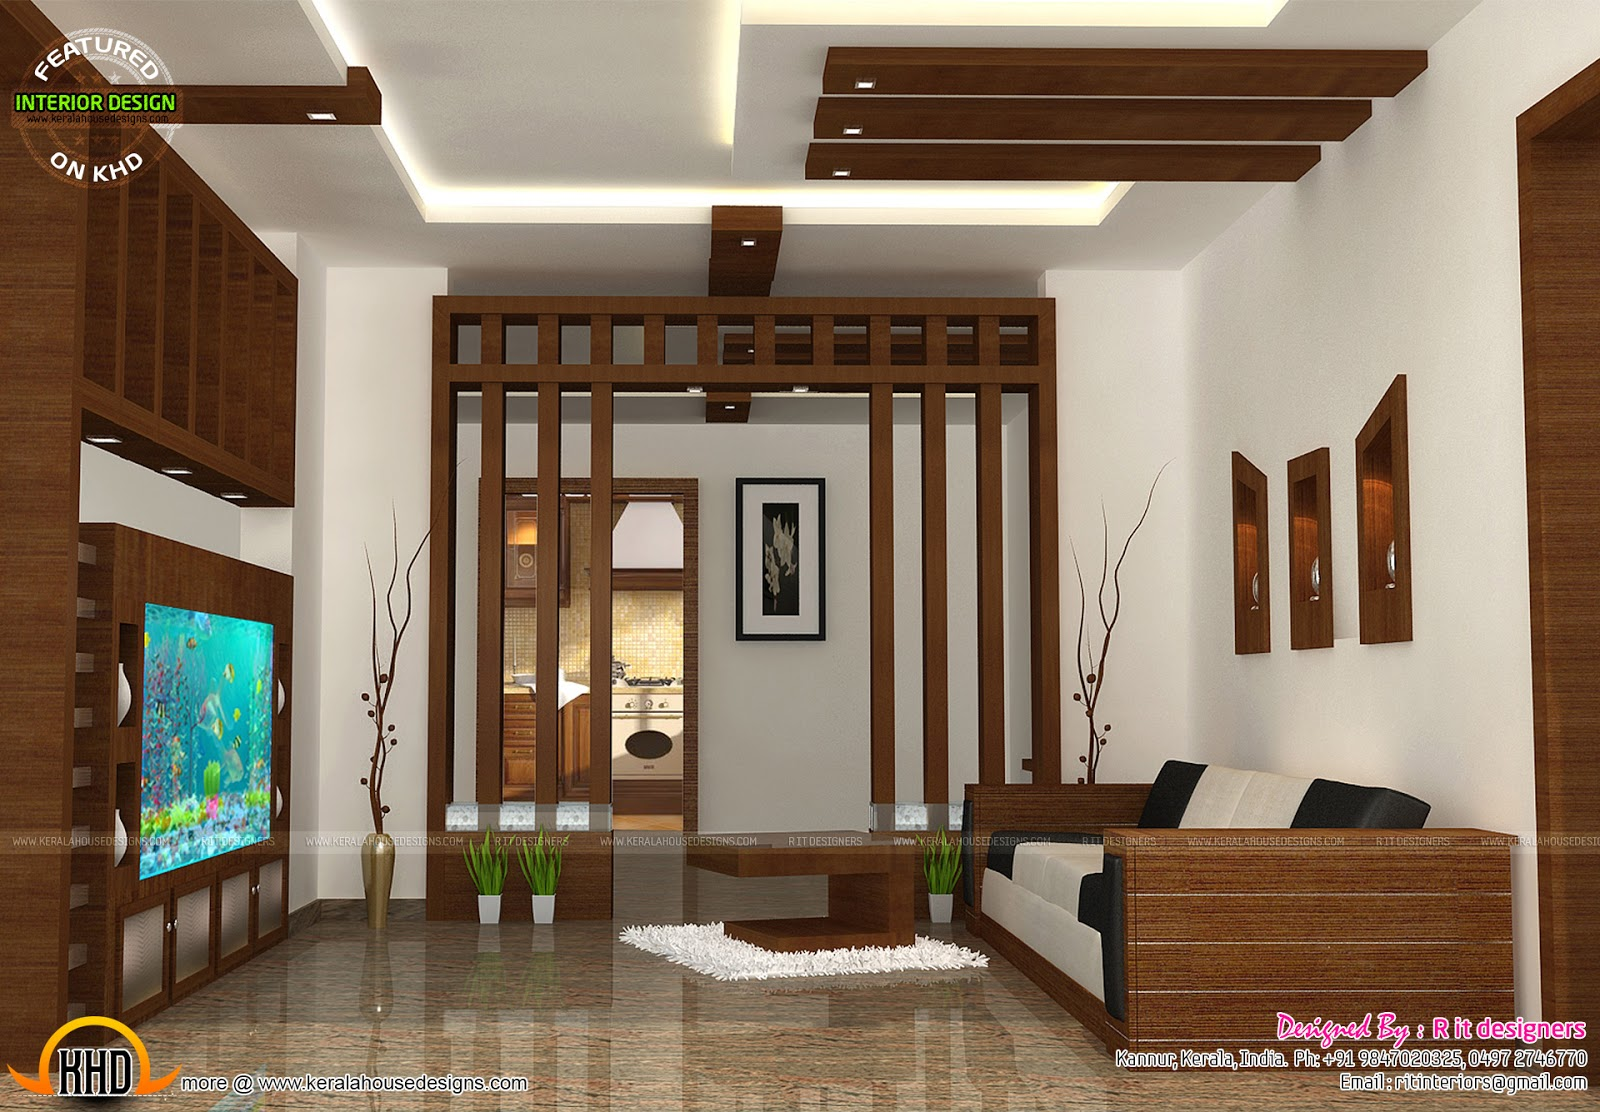 wooden finish interiors kerala home design and floor plans. Black Bedroom Furniture Sets. Home Design Ideas